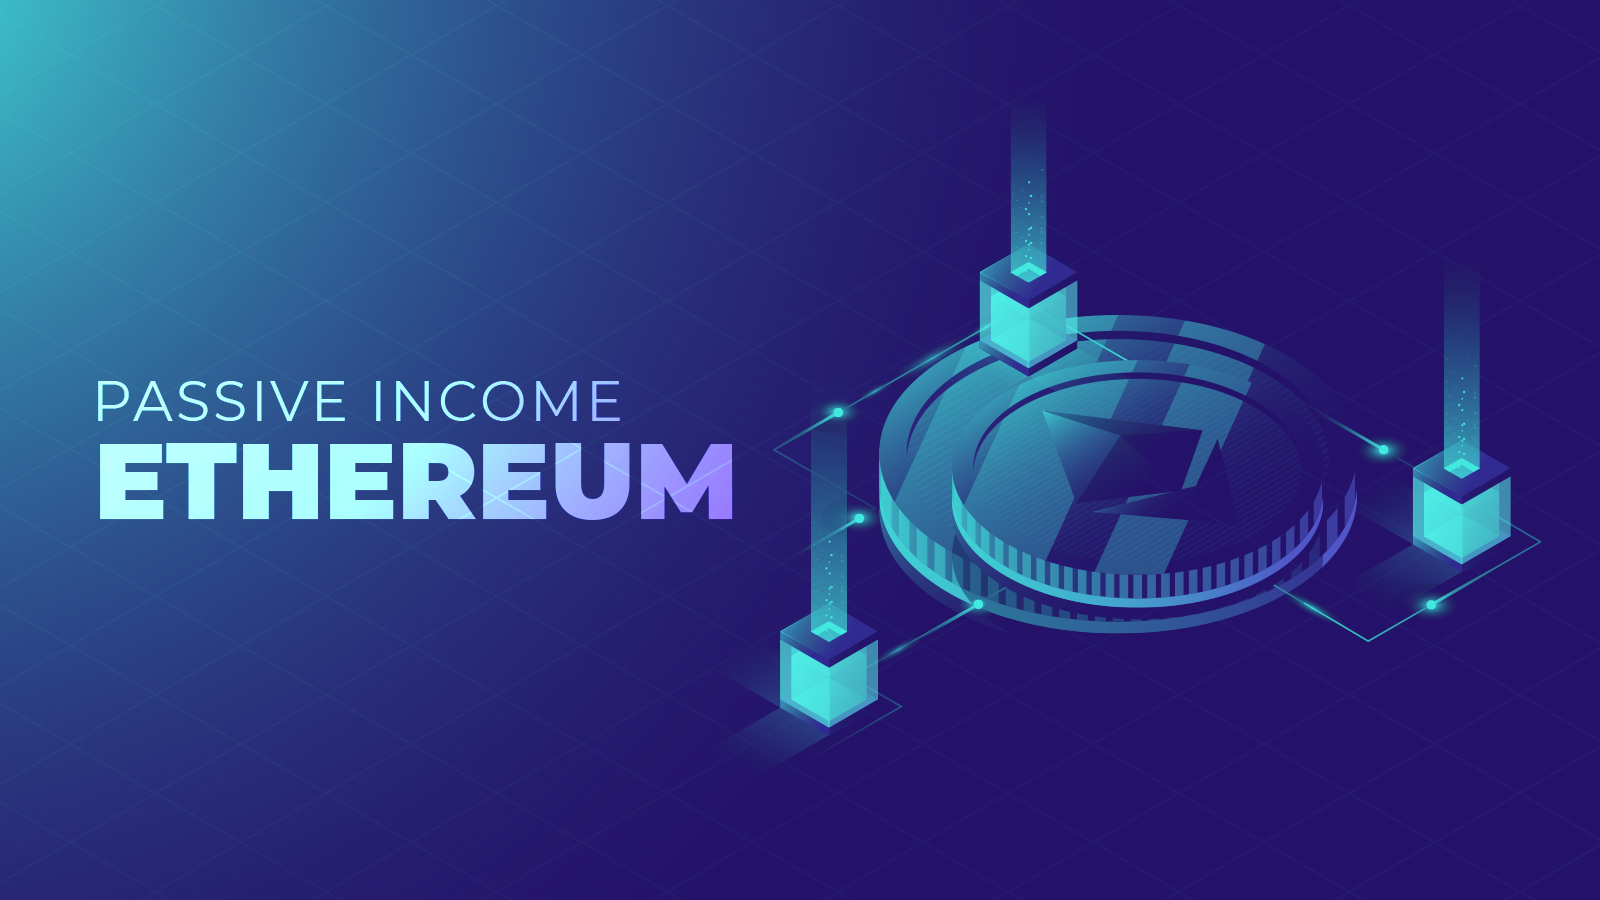 Ethereum Lending: How to Make a Passive Income With ETH